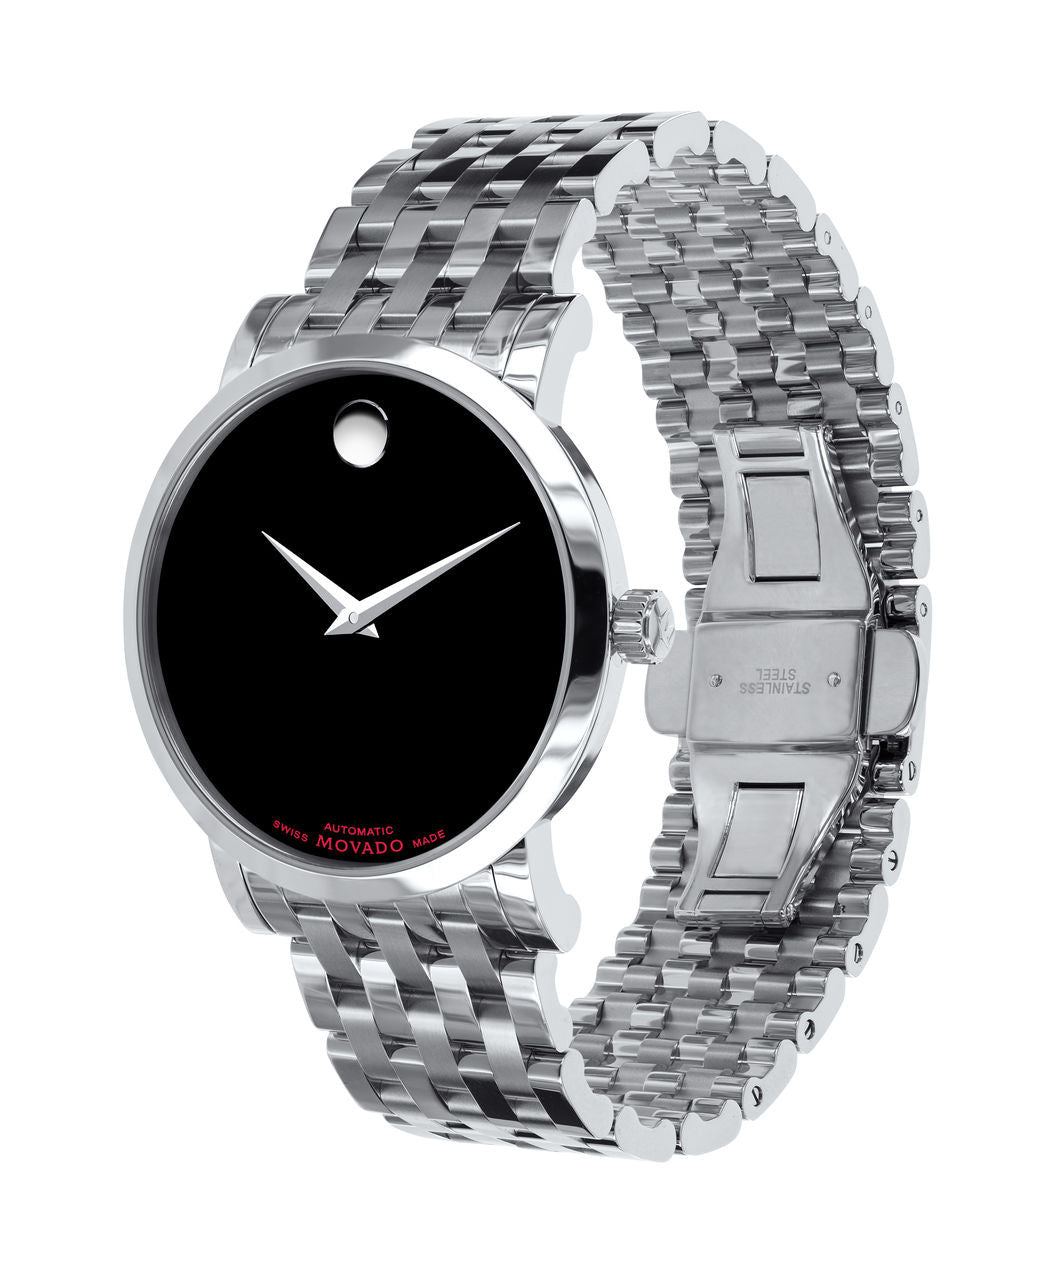 Movado Red Label - Stainless Steel Automatic